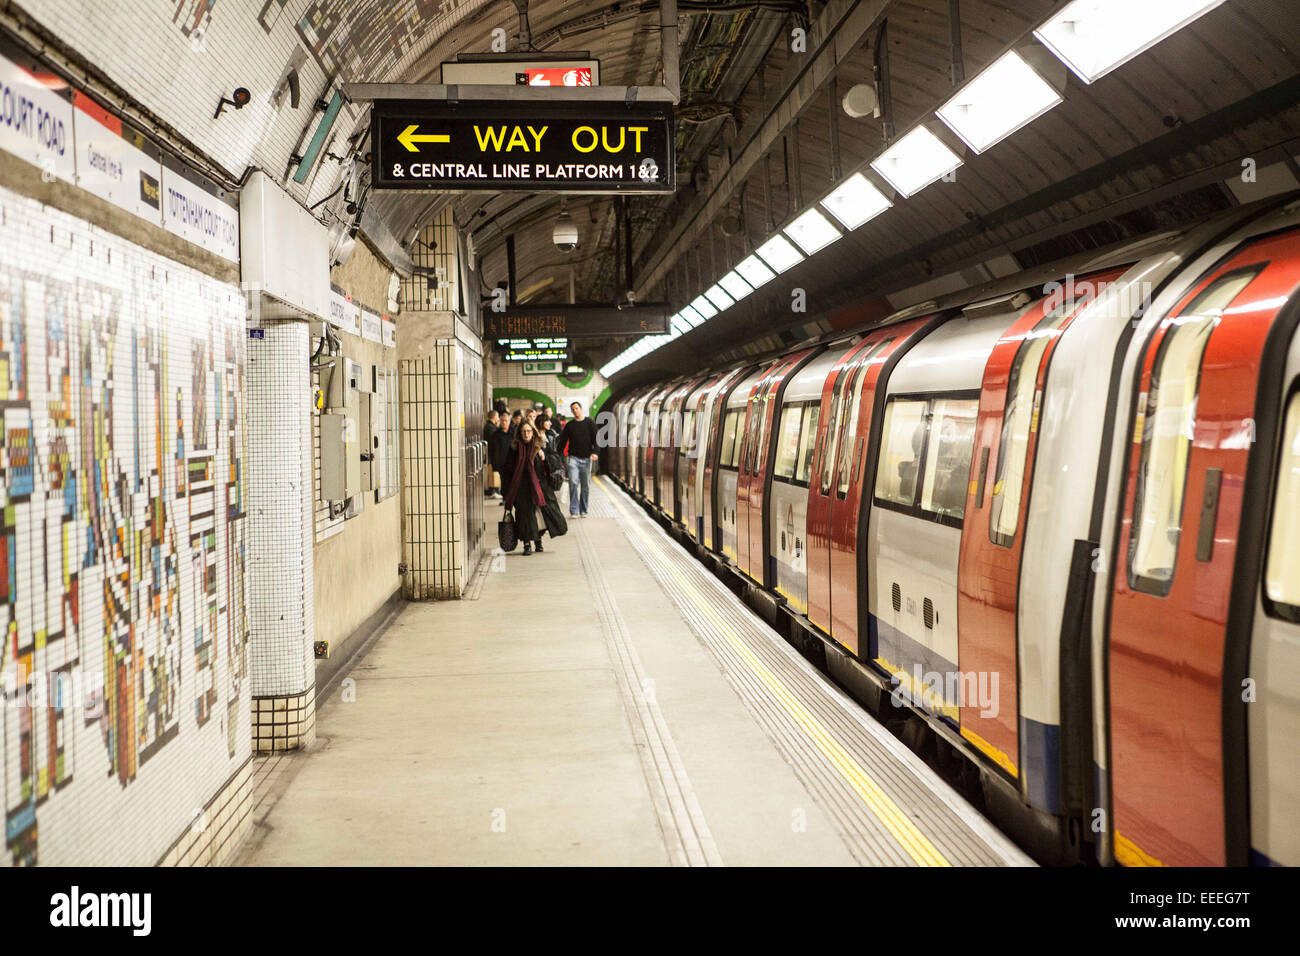 Southbound platform of the Northern Line at Tottenham Court Road Station - Stock Image